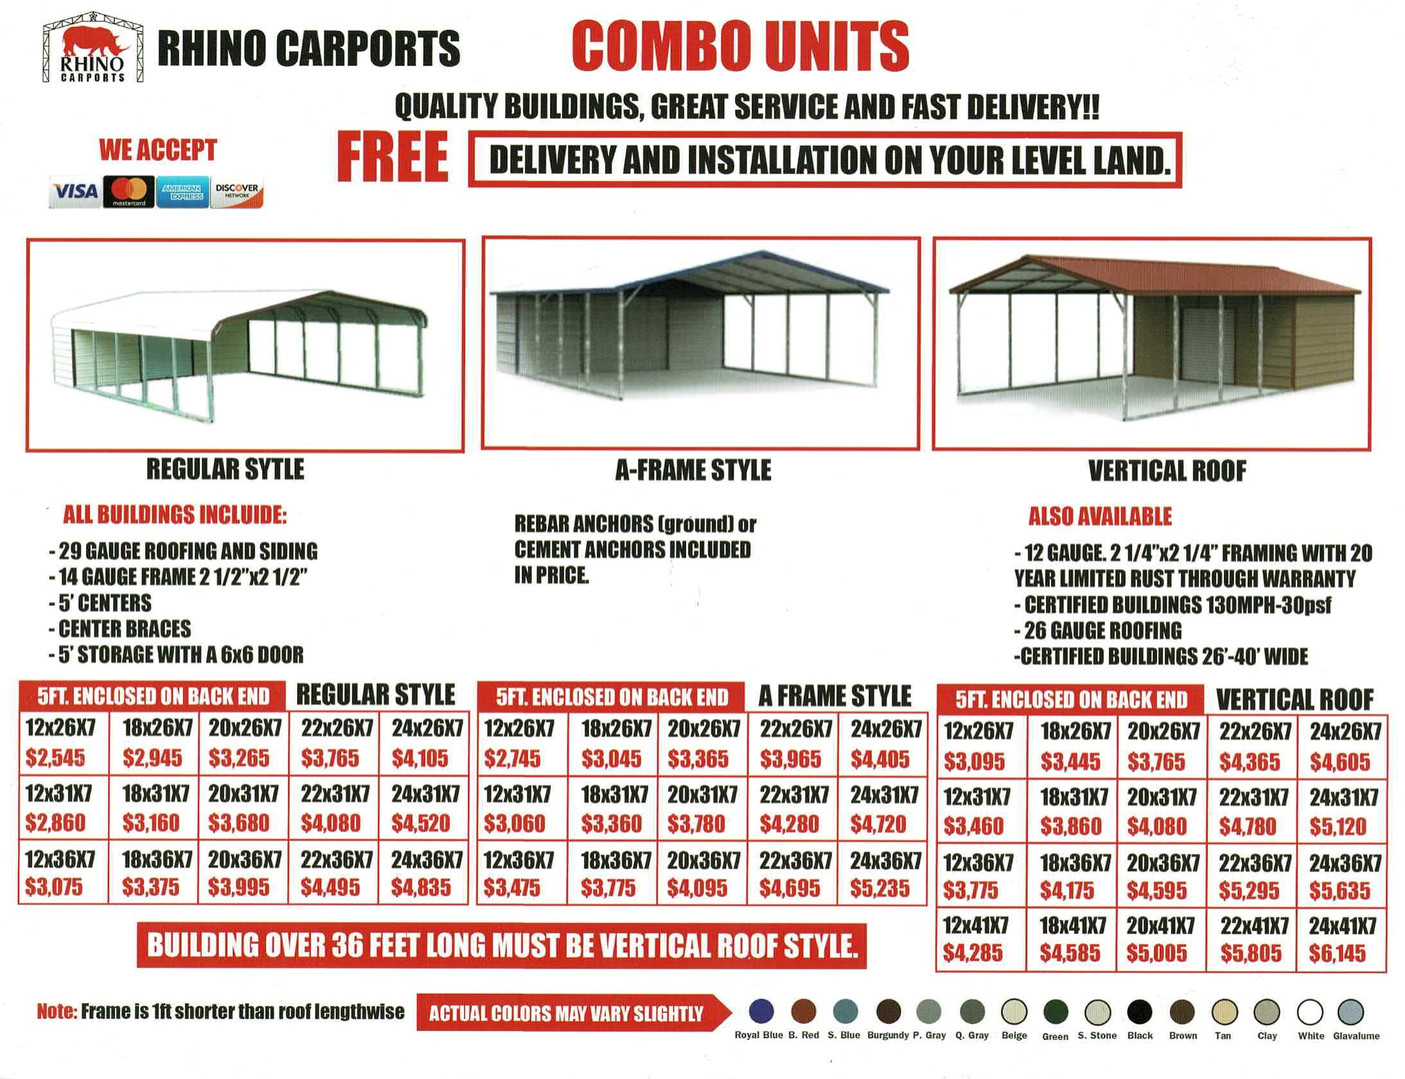 Combo Units front_edited.jpg